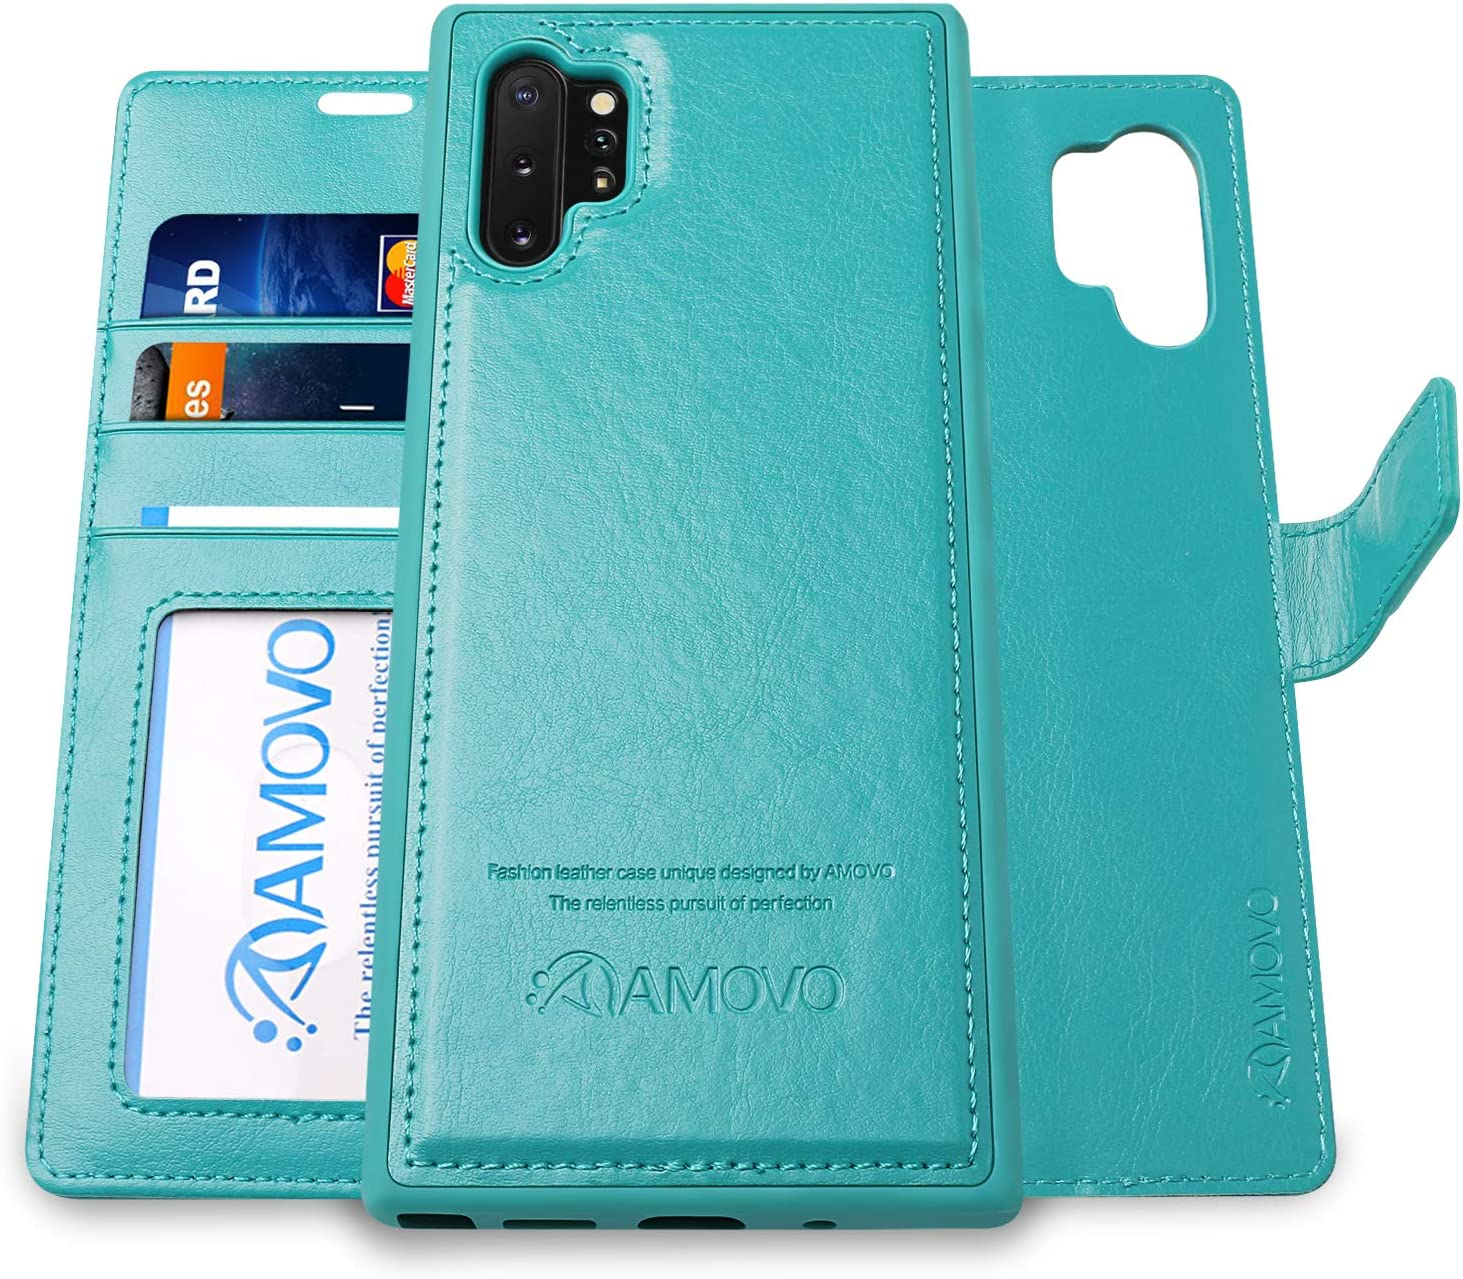 AMOVO Galaxy Note 10+ Wallet Case [2 in 1 Detachable] Vegan Leather Case for Samsung Galaxy Note 10 Plus (6.8'') [Wrist Strap] Note 10 Pro Flip Case with Box Package (Note10+ (6.8'') Aqua)